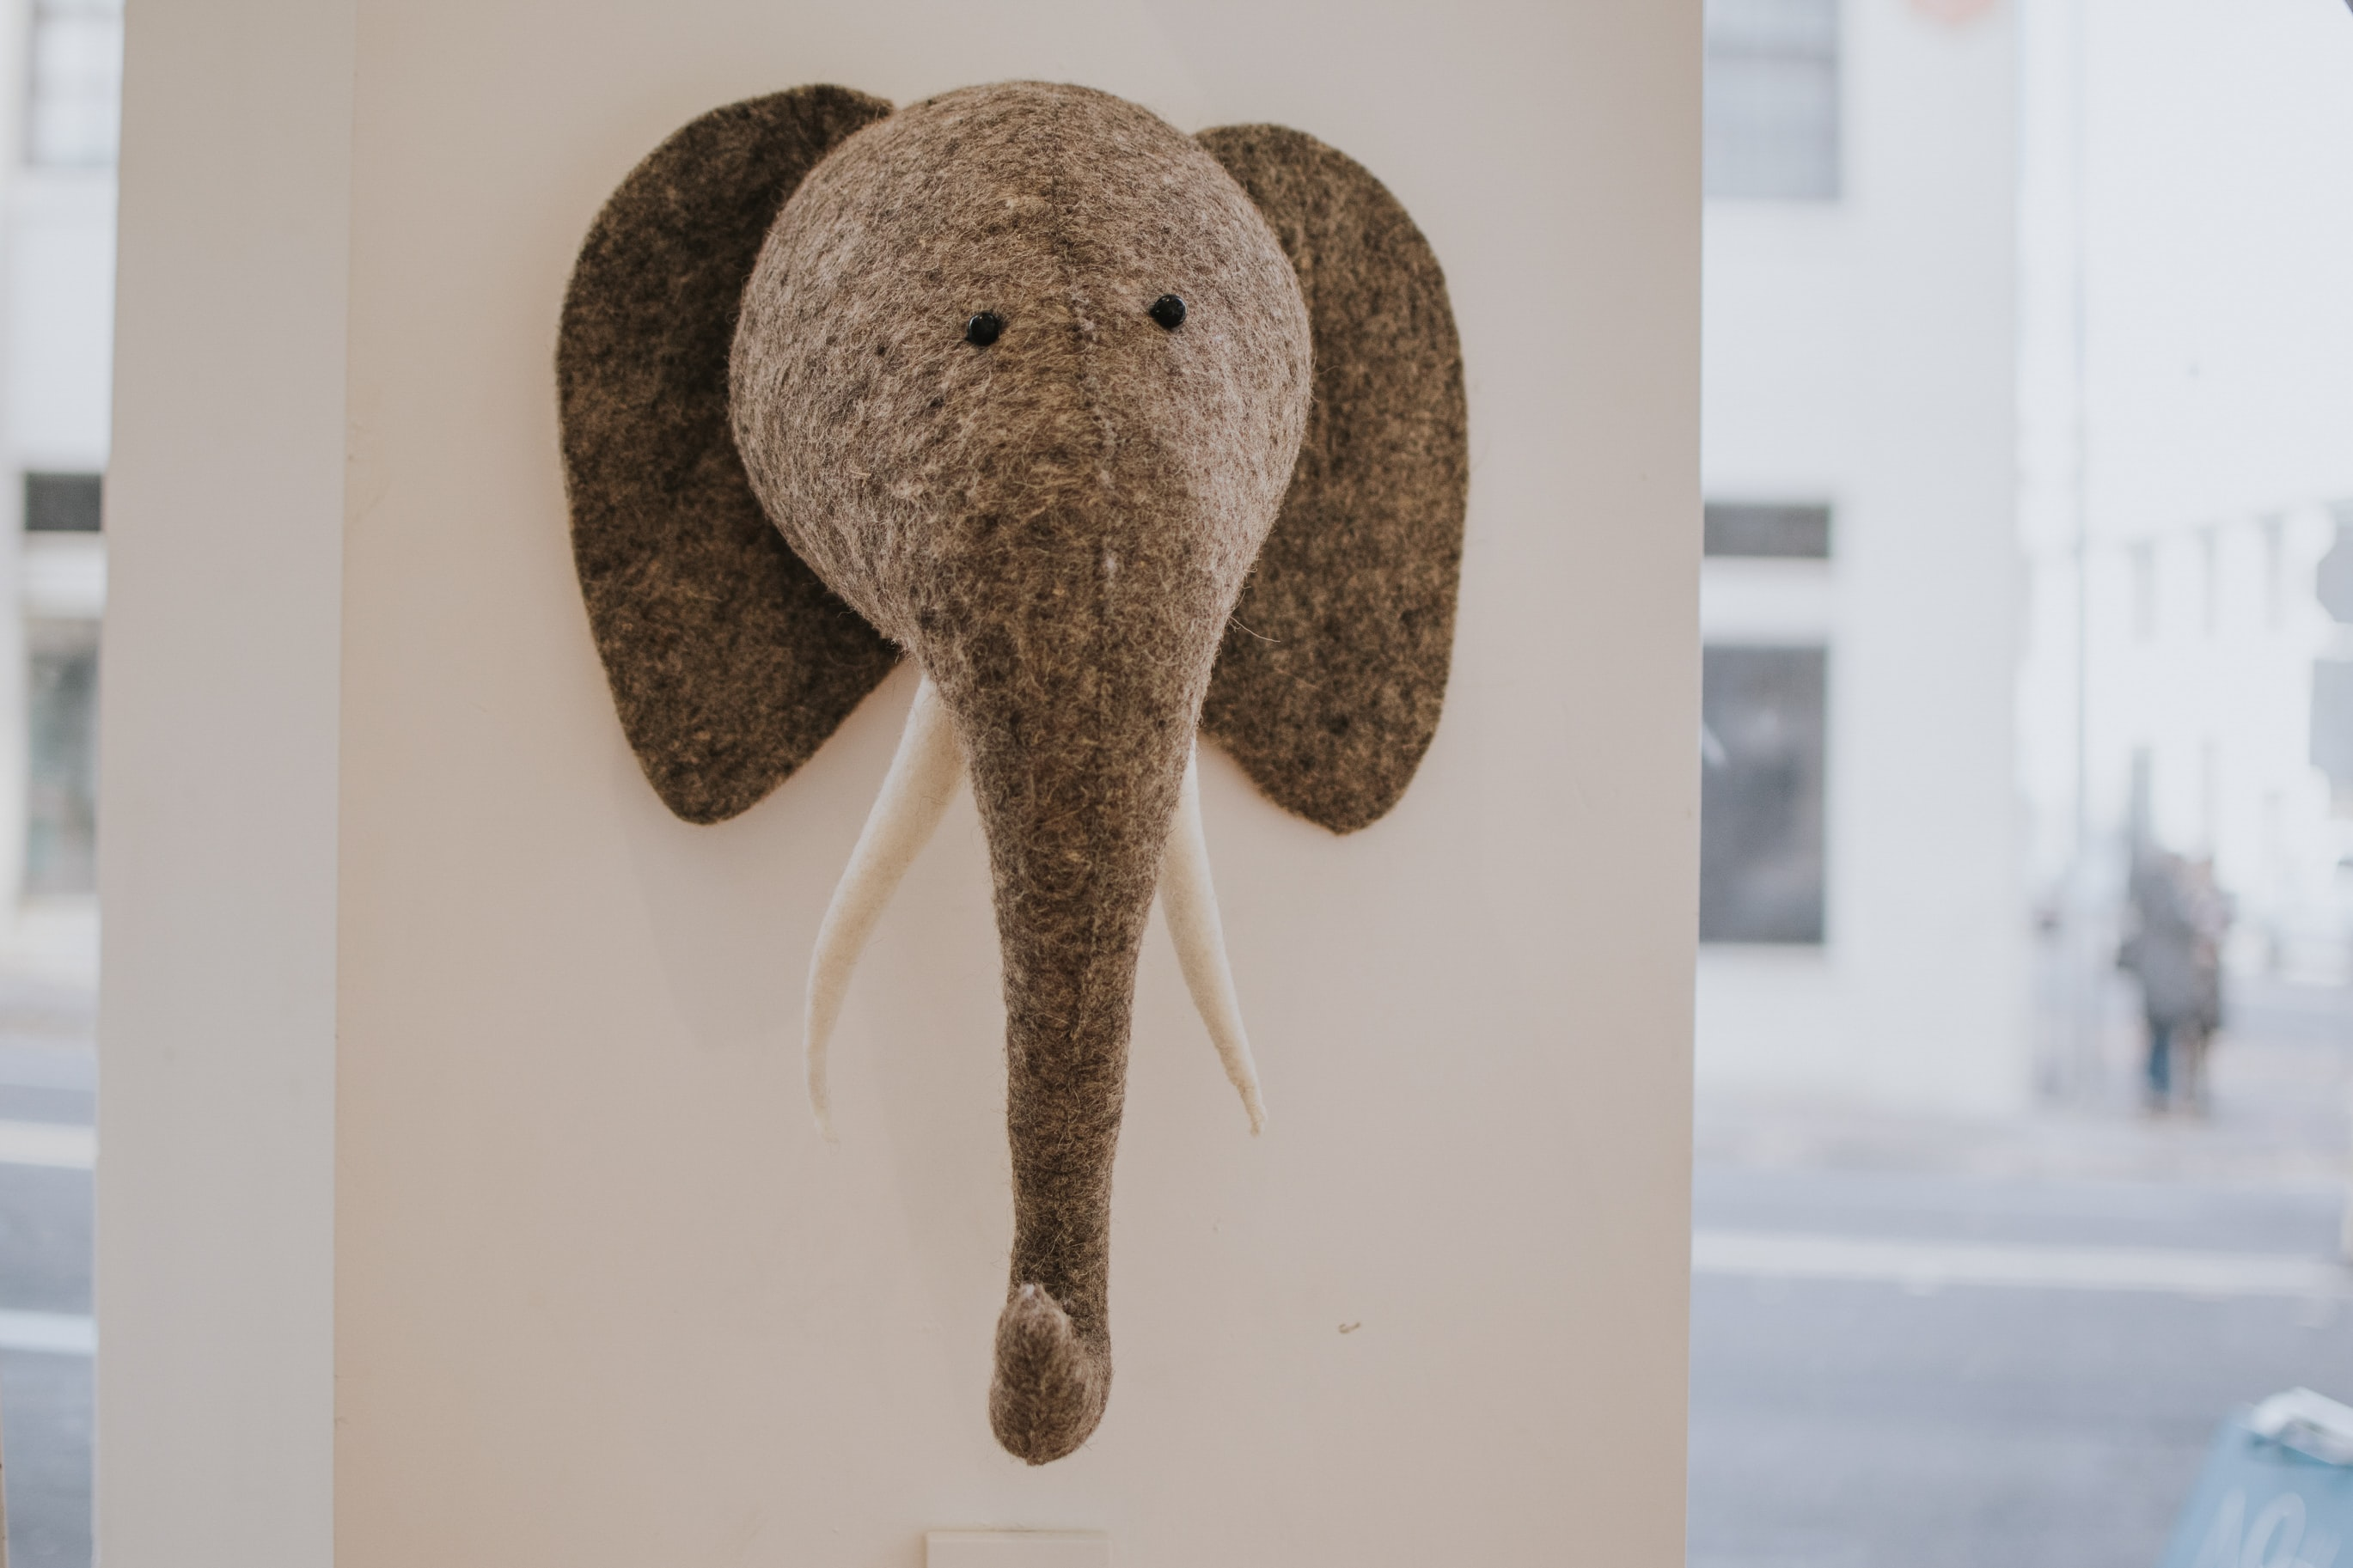 gray elephant head figure hanging on wall